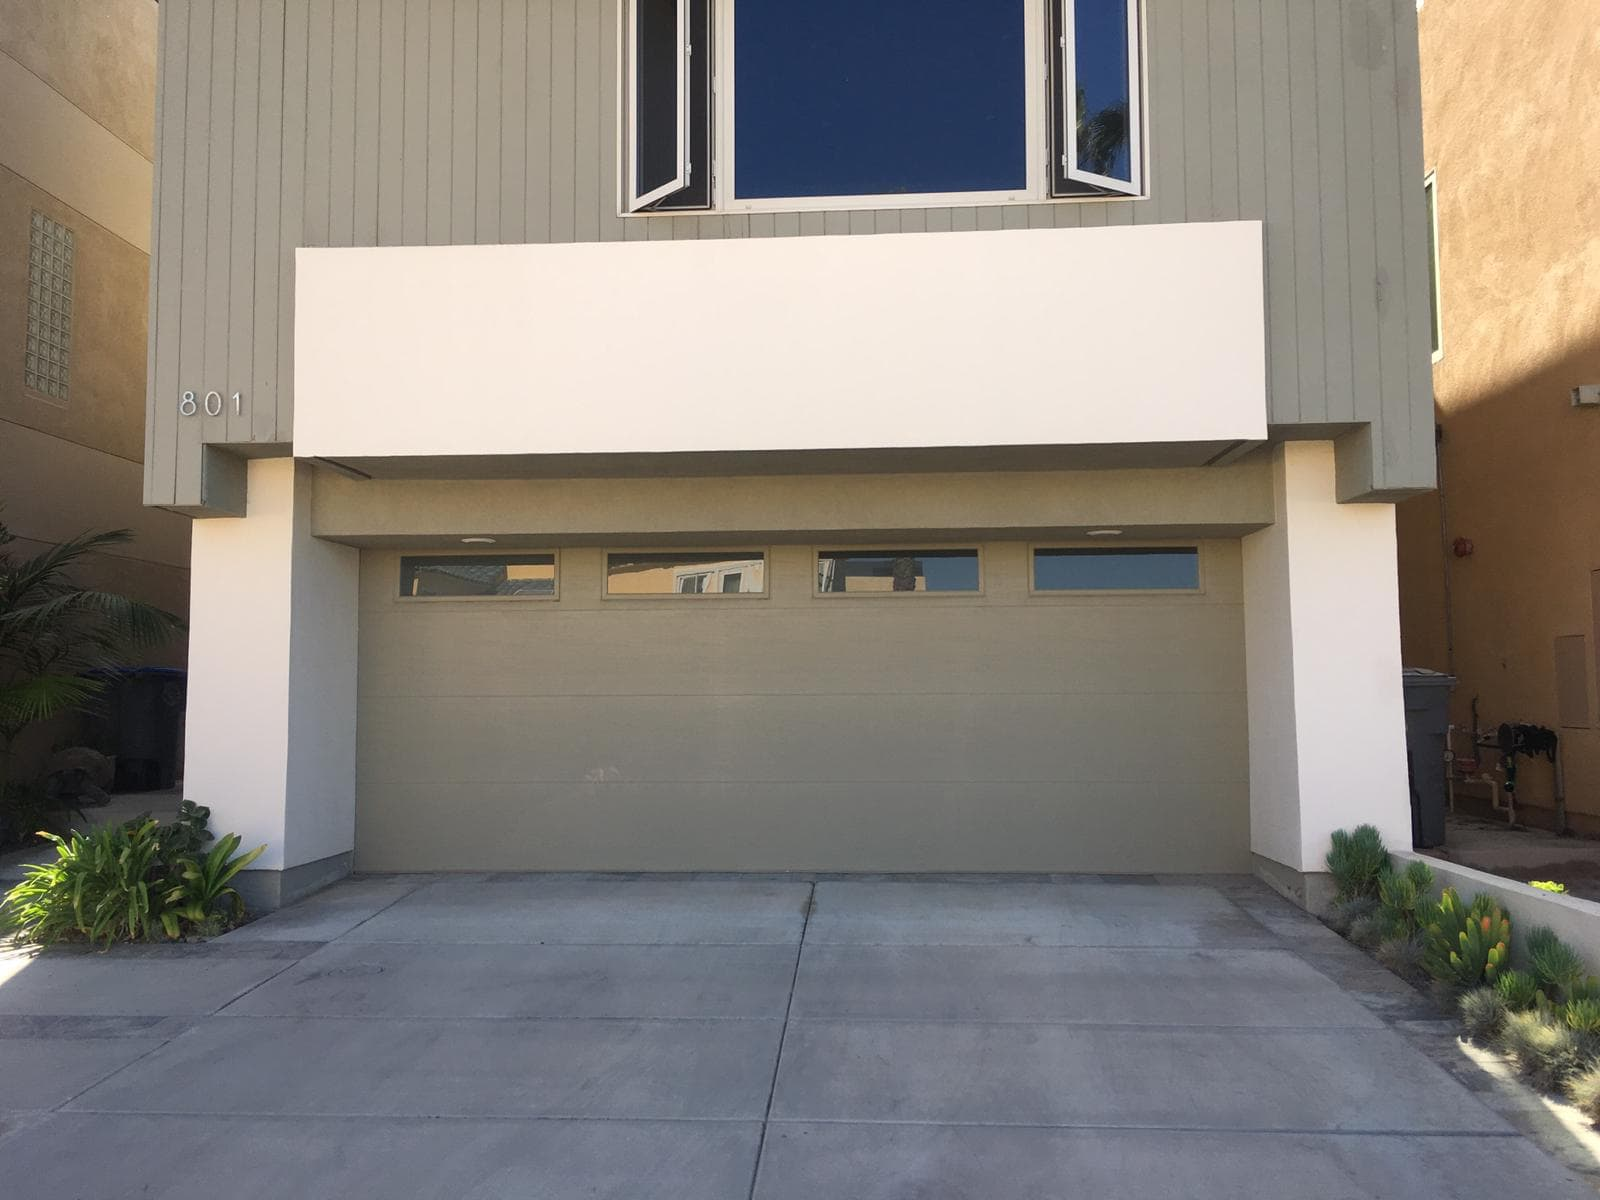 San Bruno Garage door repair and replacement